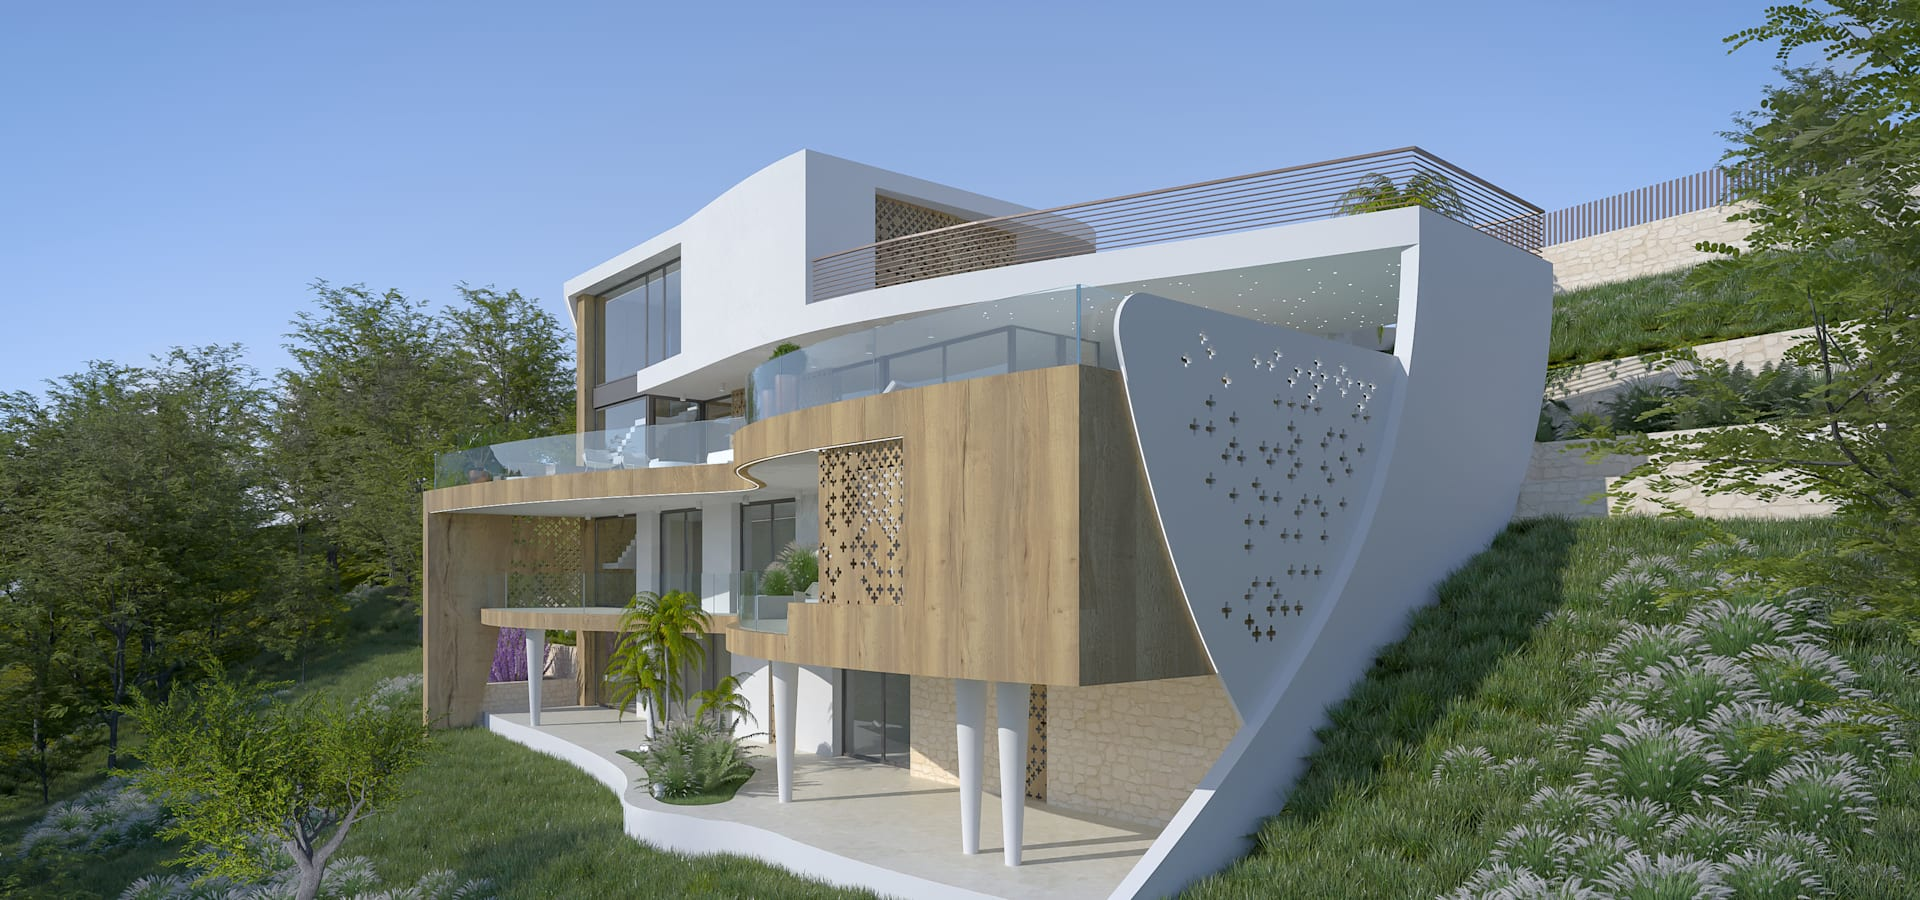 ANVANA architects